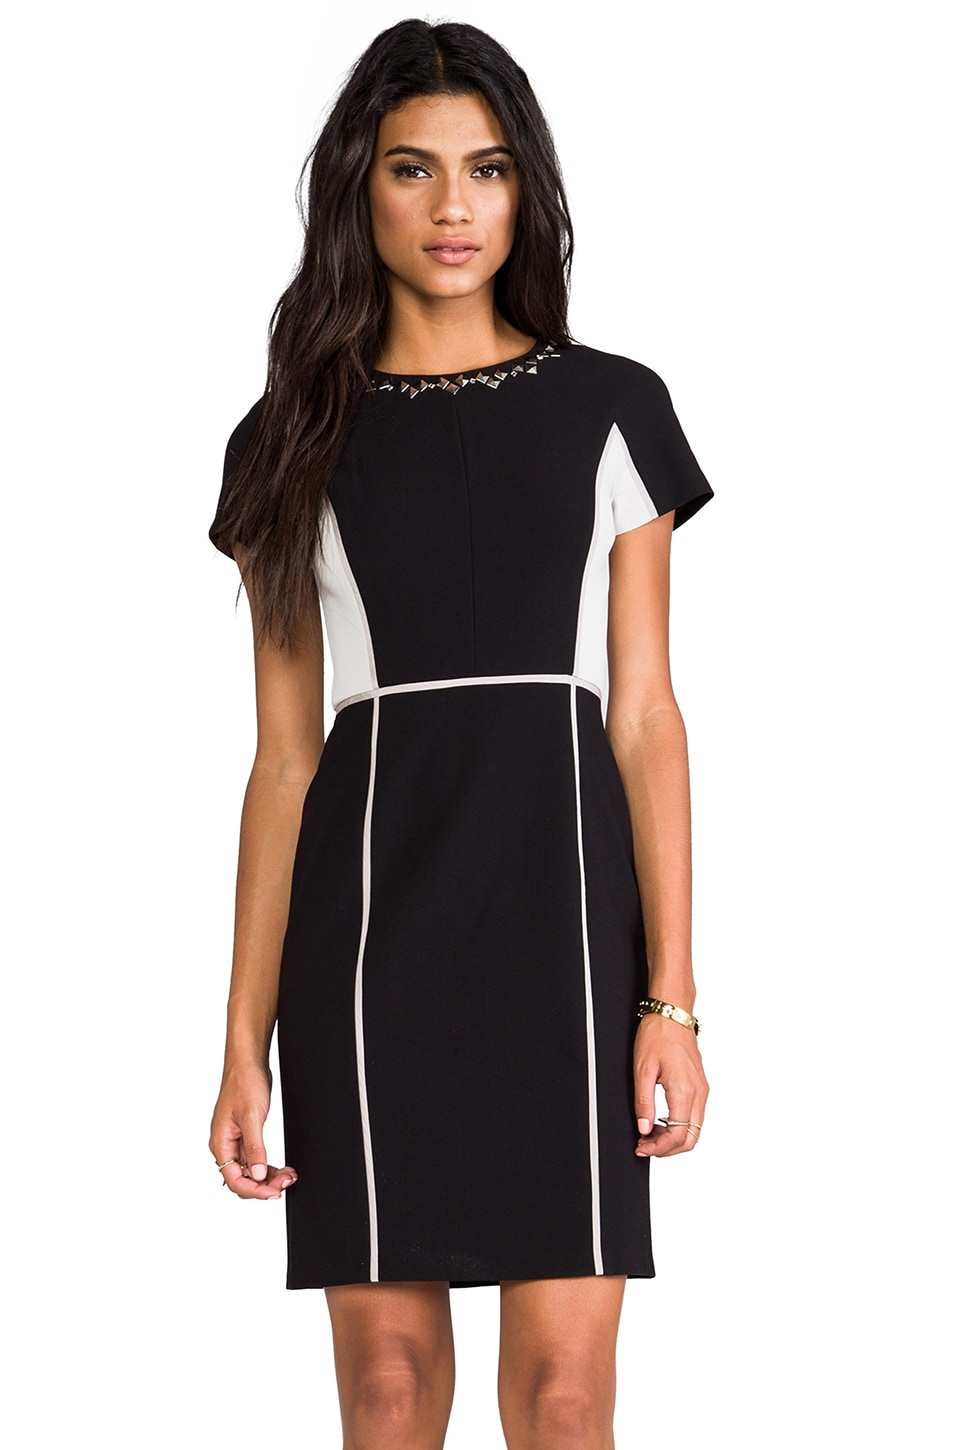 Rebecca Taylor Blocked Dress w/ Embellishment in Black/Shady